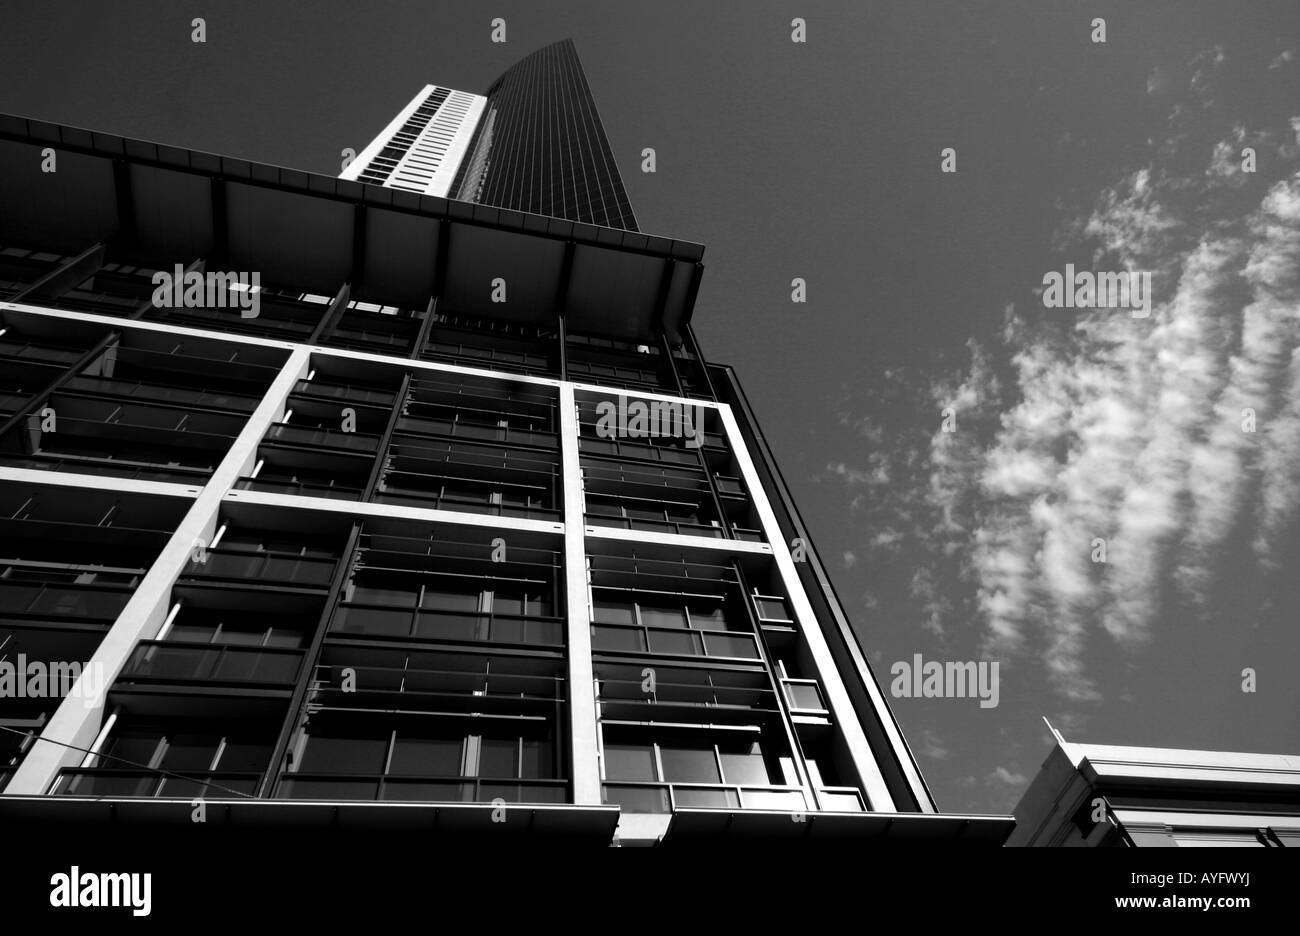 picure of a skyscaper in melbourne - Stock Image